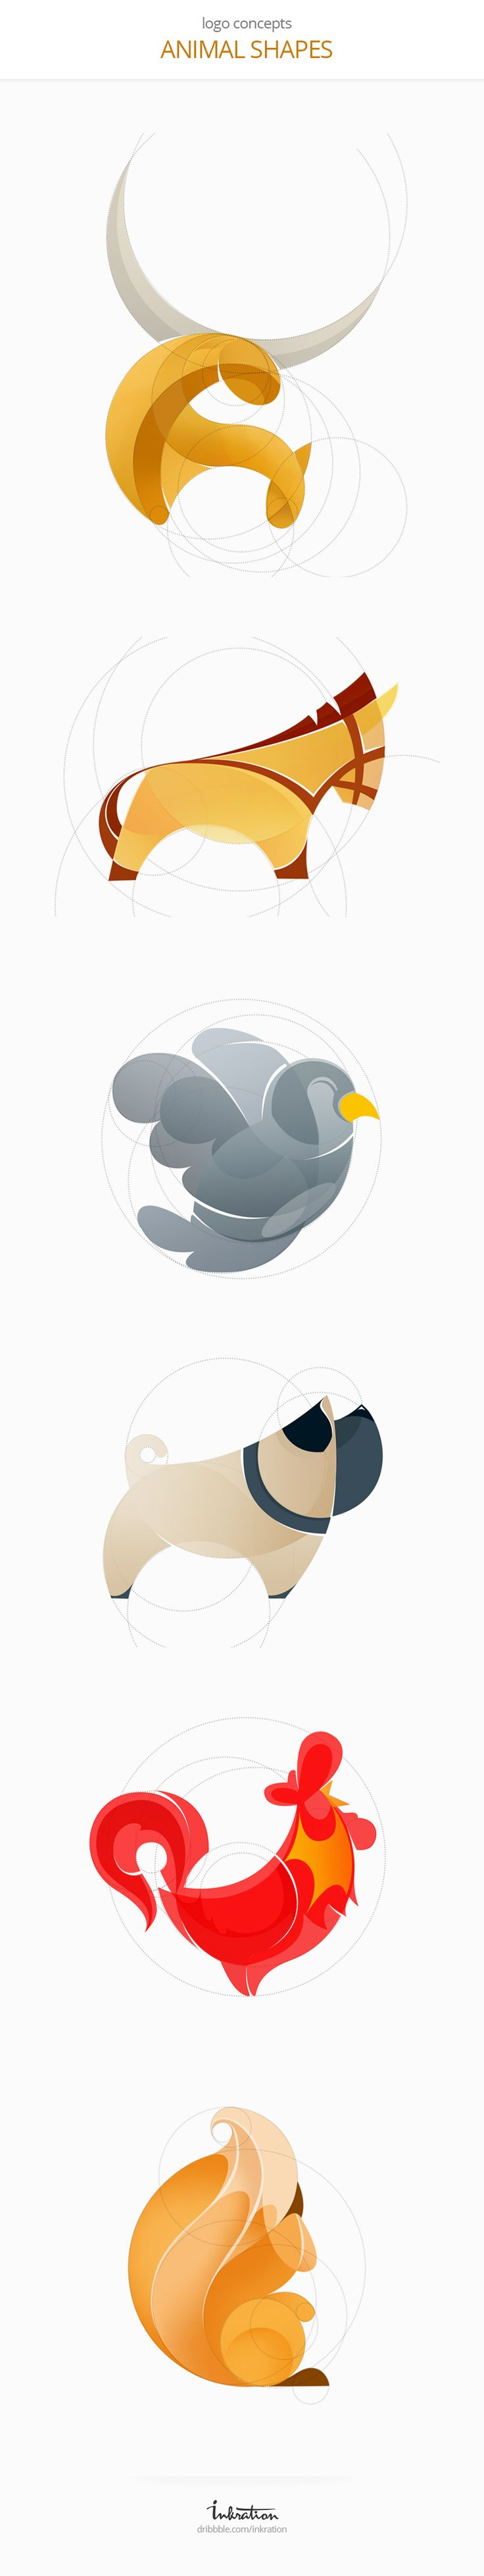 https://dribbble.com/shots/1613293-Animal-Logos/attachments/250520